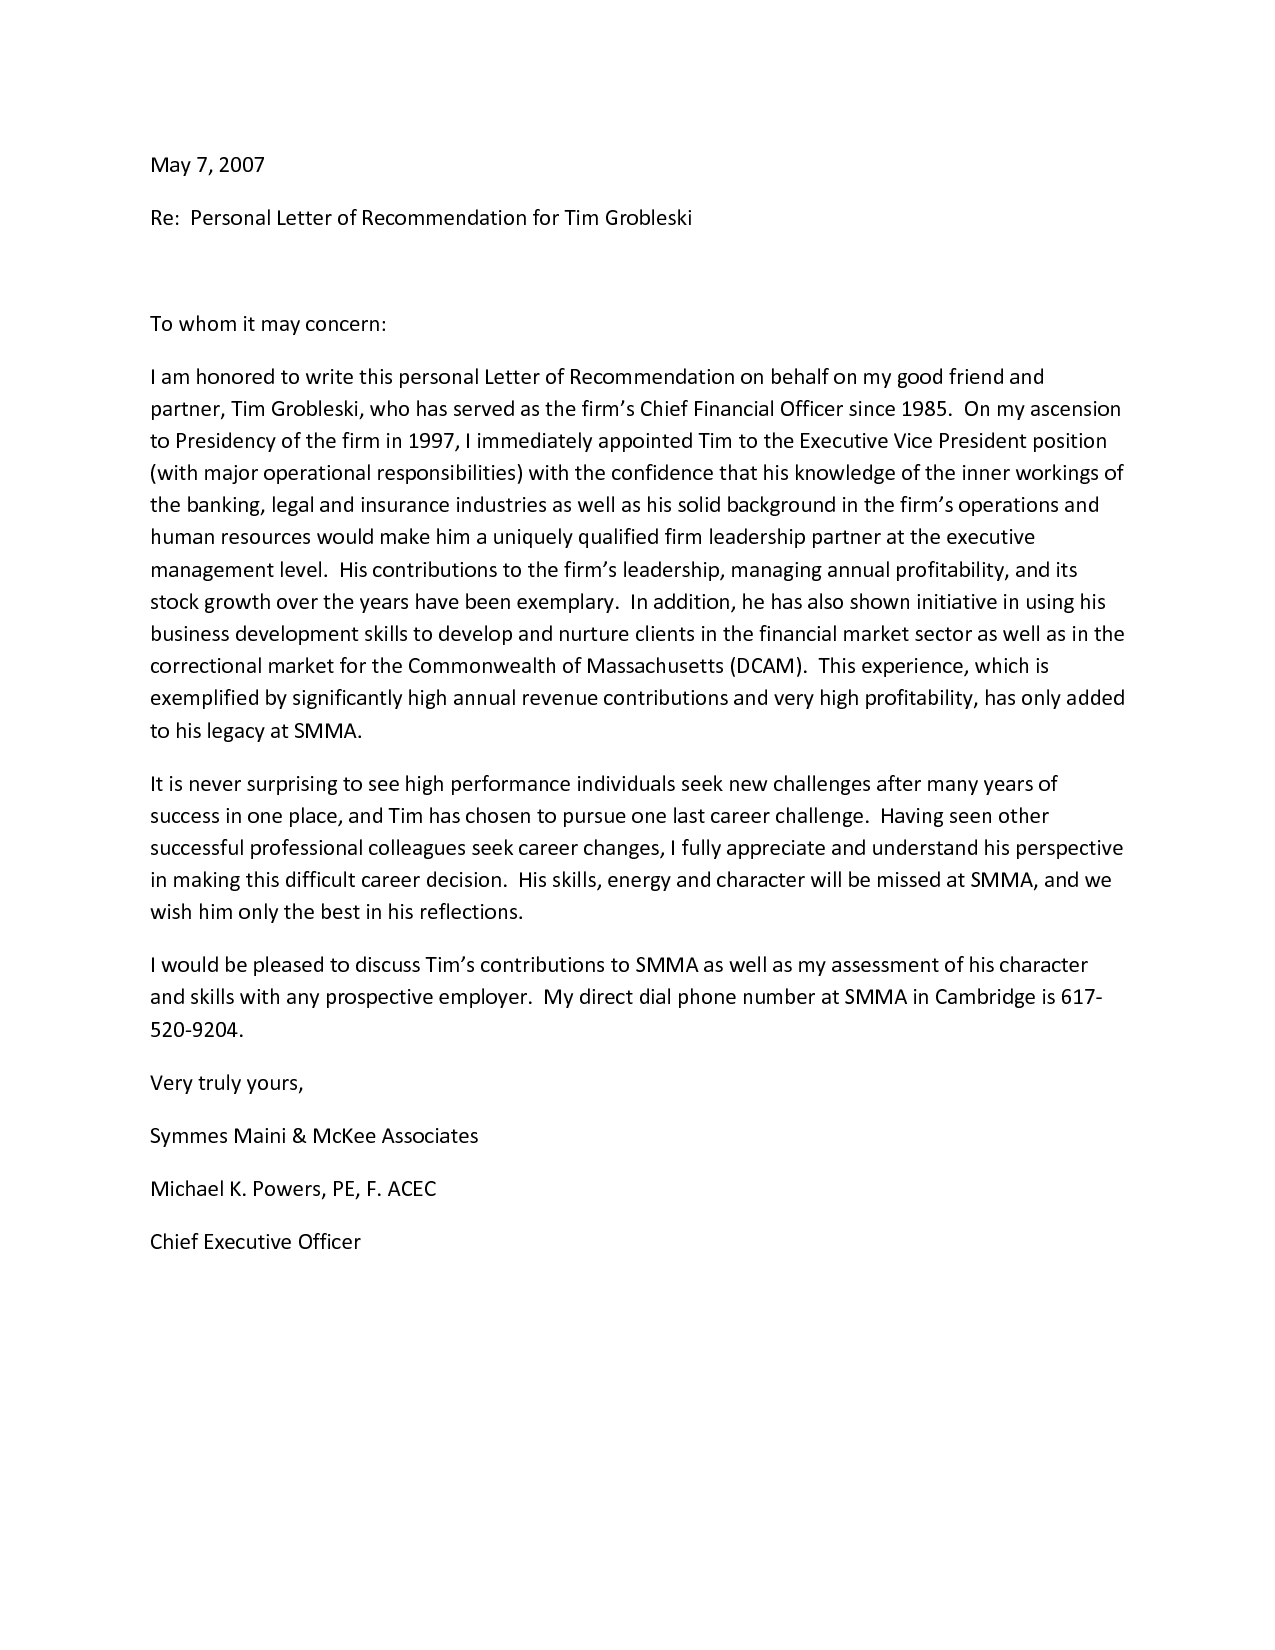 Recommendation Letter For A Friend Template SeeabruzzoPersonal Recommendation Letter Cover